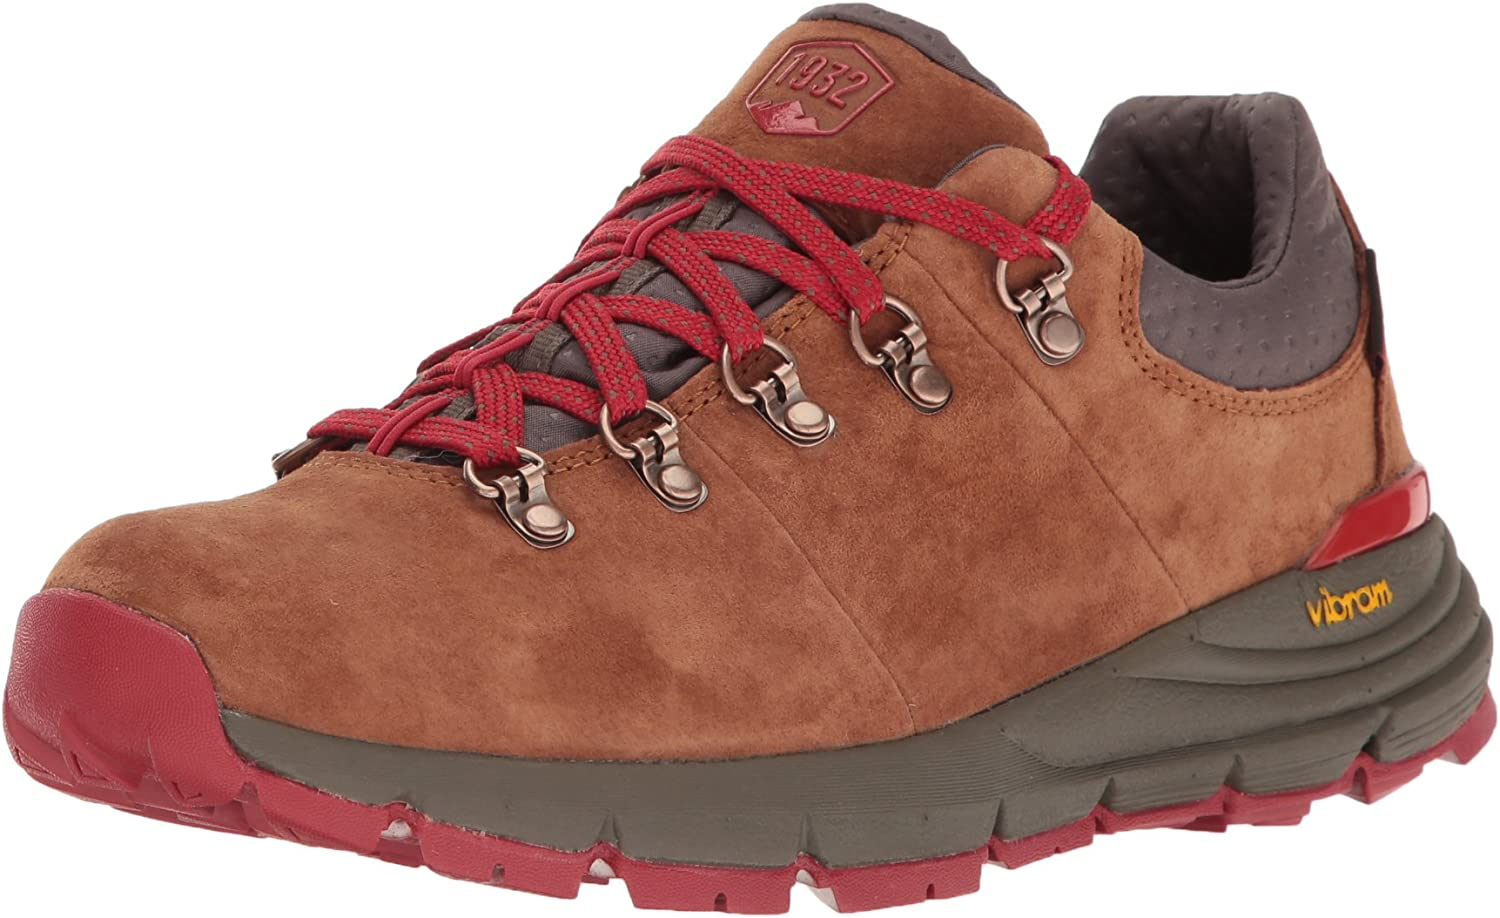 Danner Women s Mountain 600 Low 3 Brown Red Hiking Boot